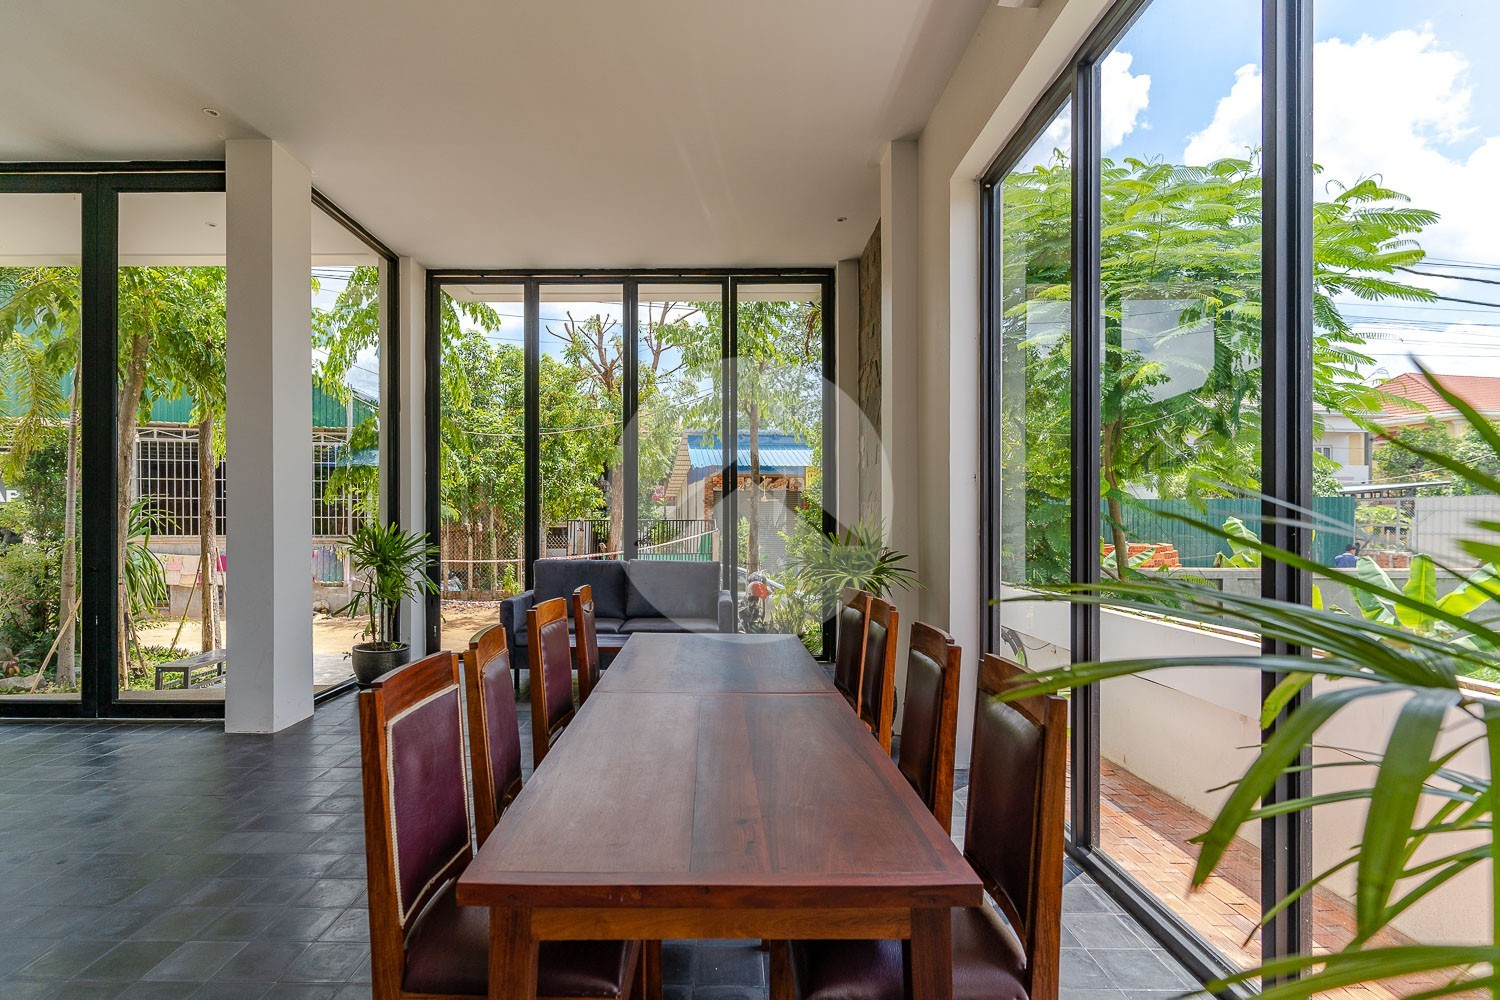 32 Sqm Office Space For Rent - Night Market Area, Siem Reap